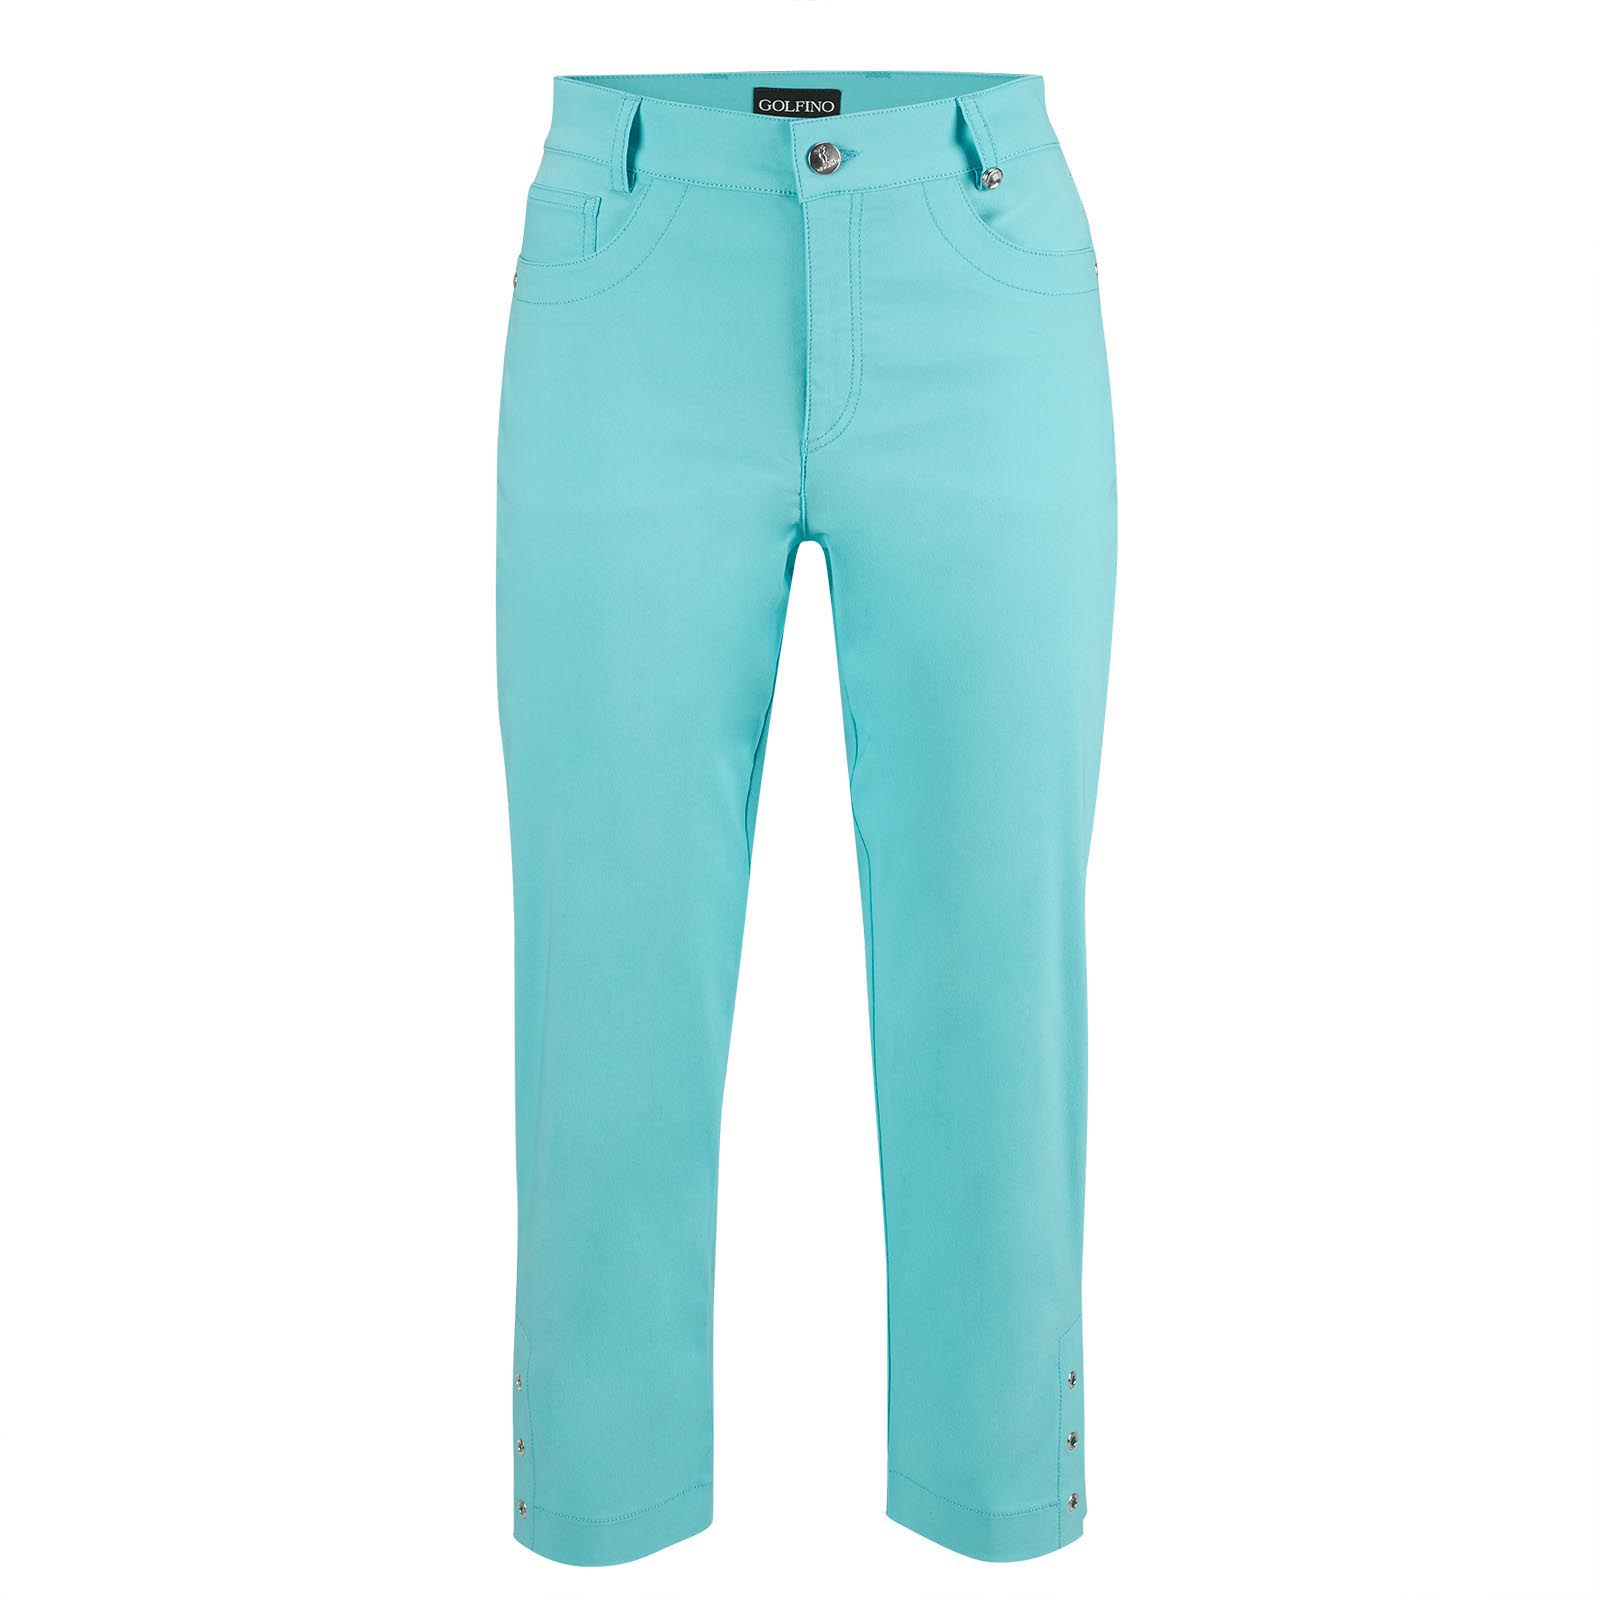 Sofileta® Cotton-Blend Damen Stretch-Caprihose mit UV Protection